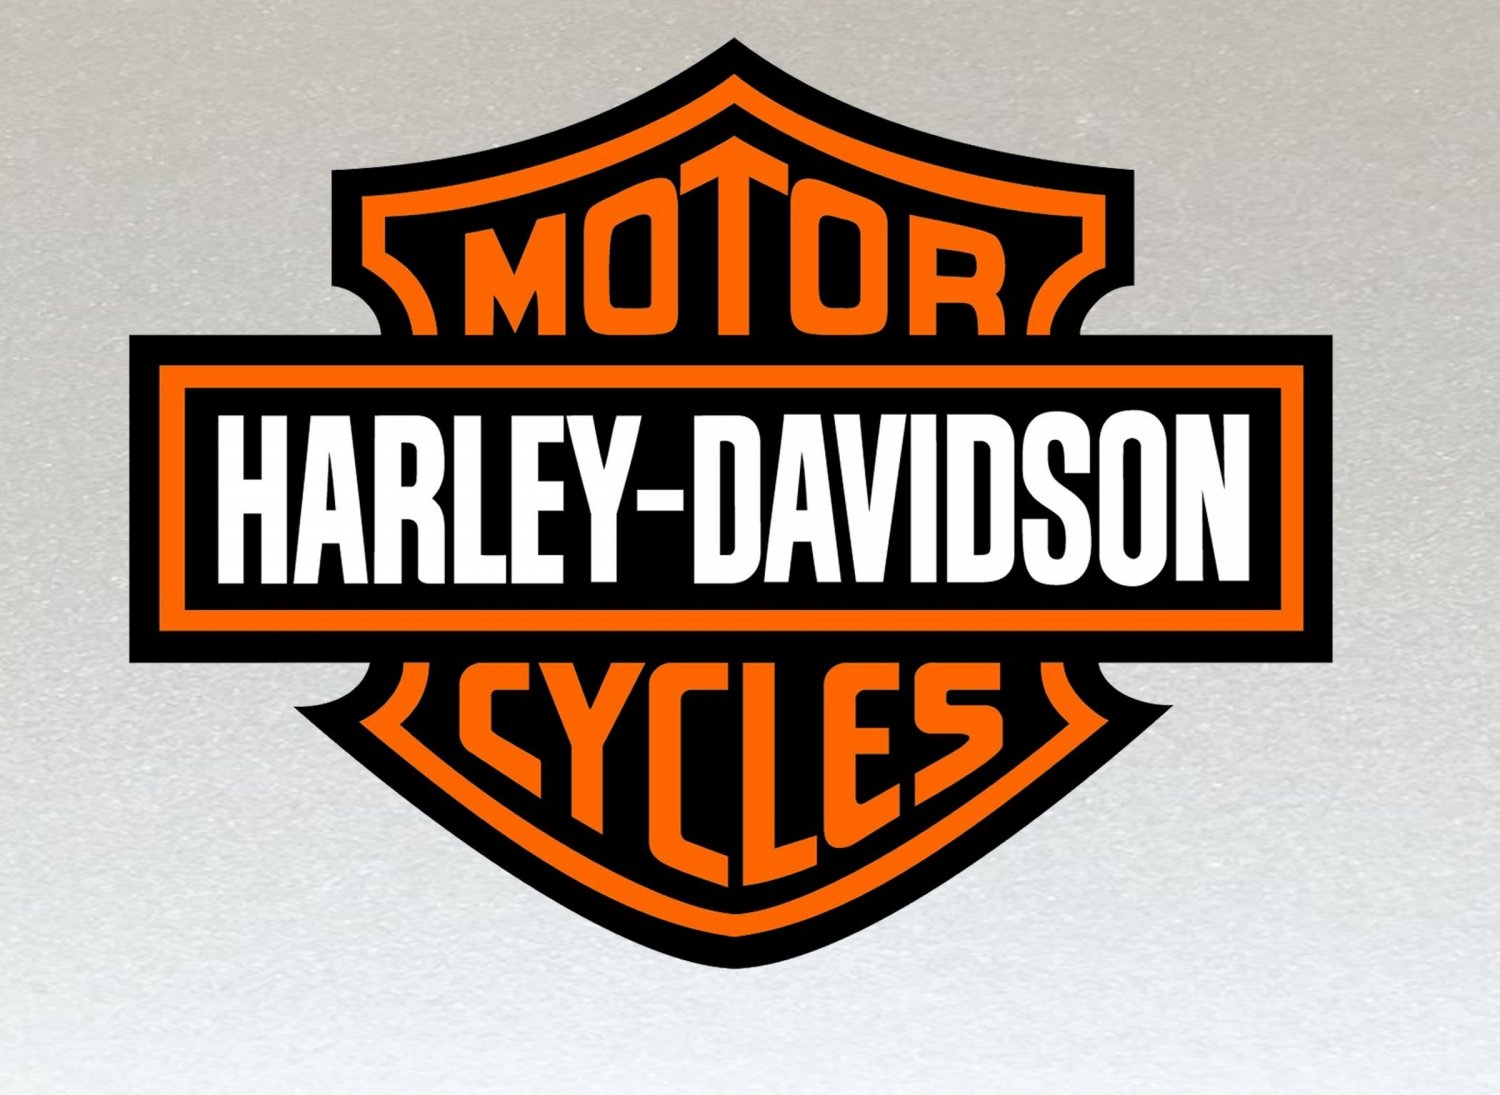 Harley Davidson Orange, Black and White Logo Stickers x 2 Included (Laminated) Water Resistant 120mm